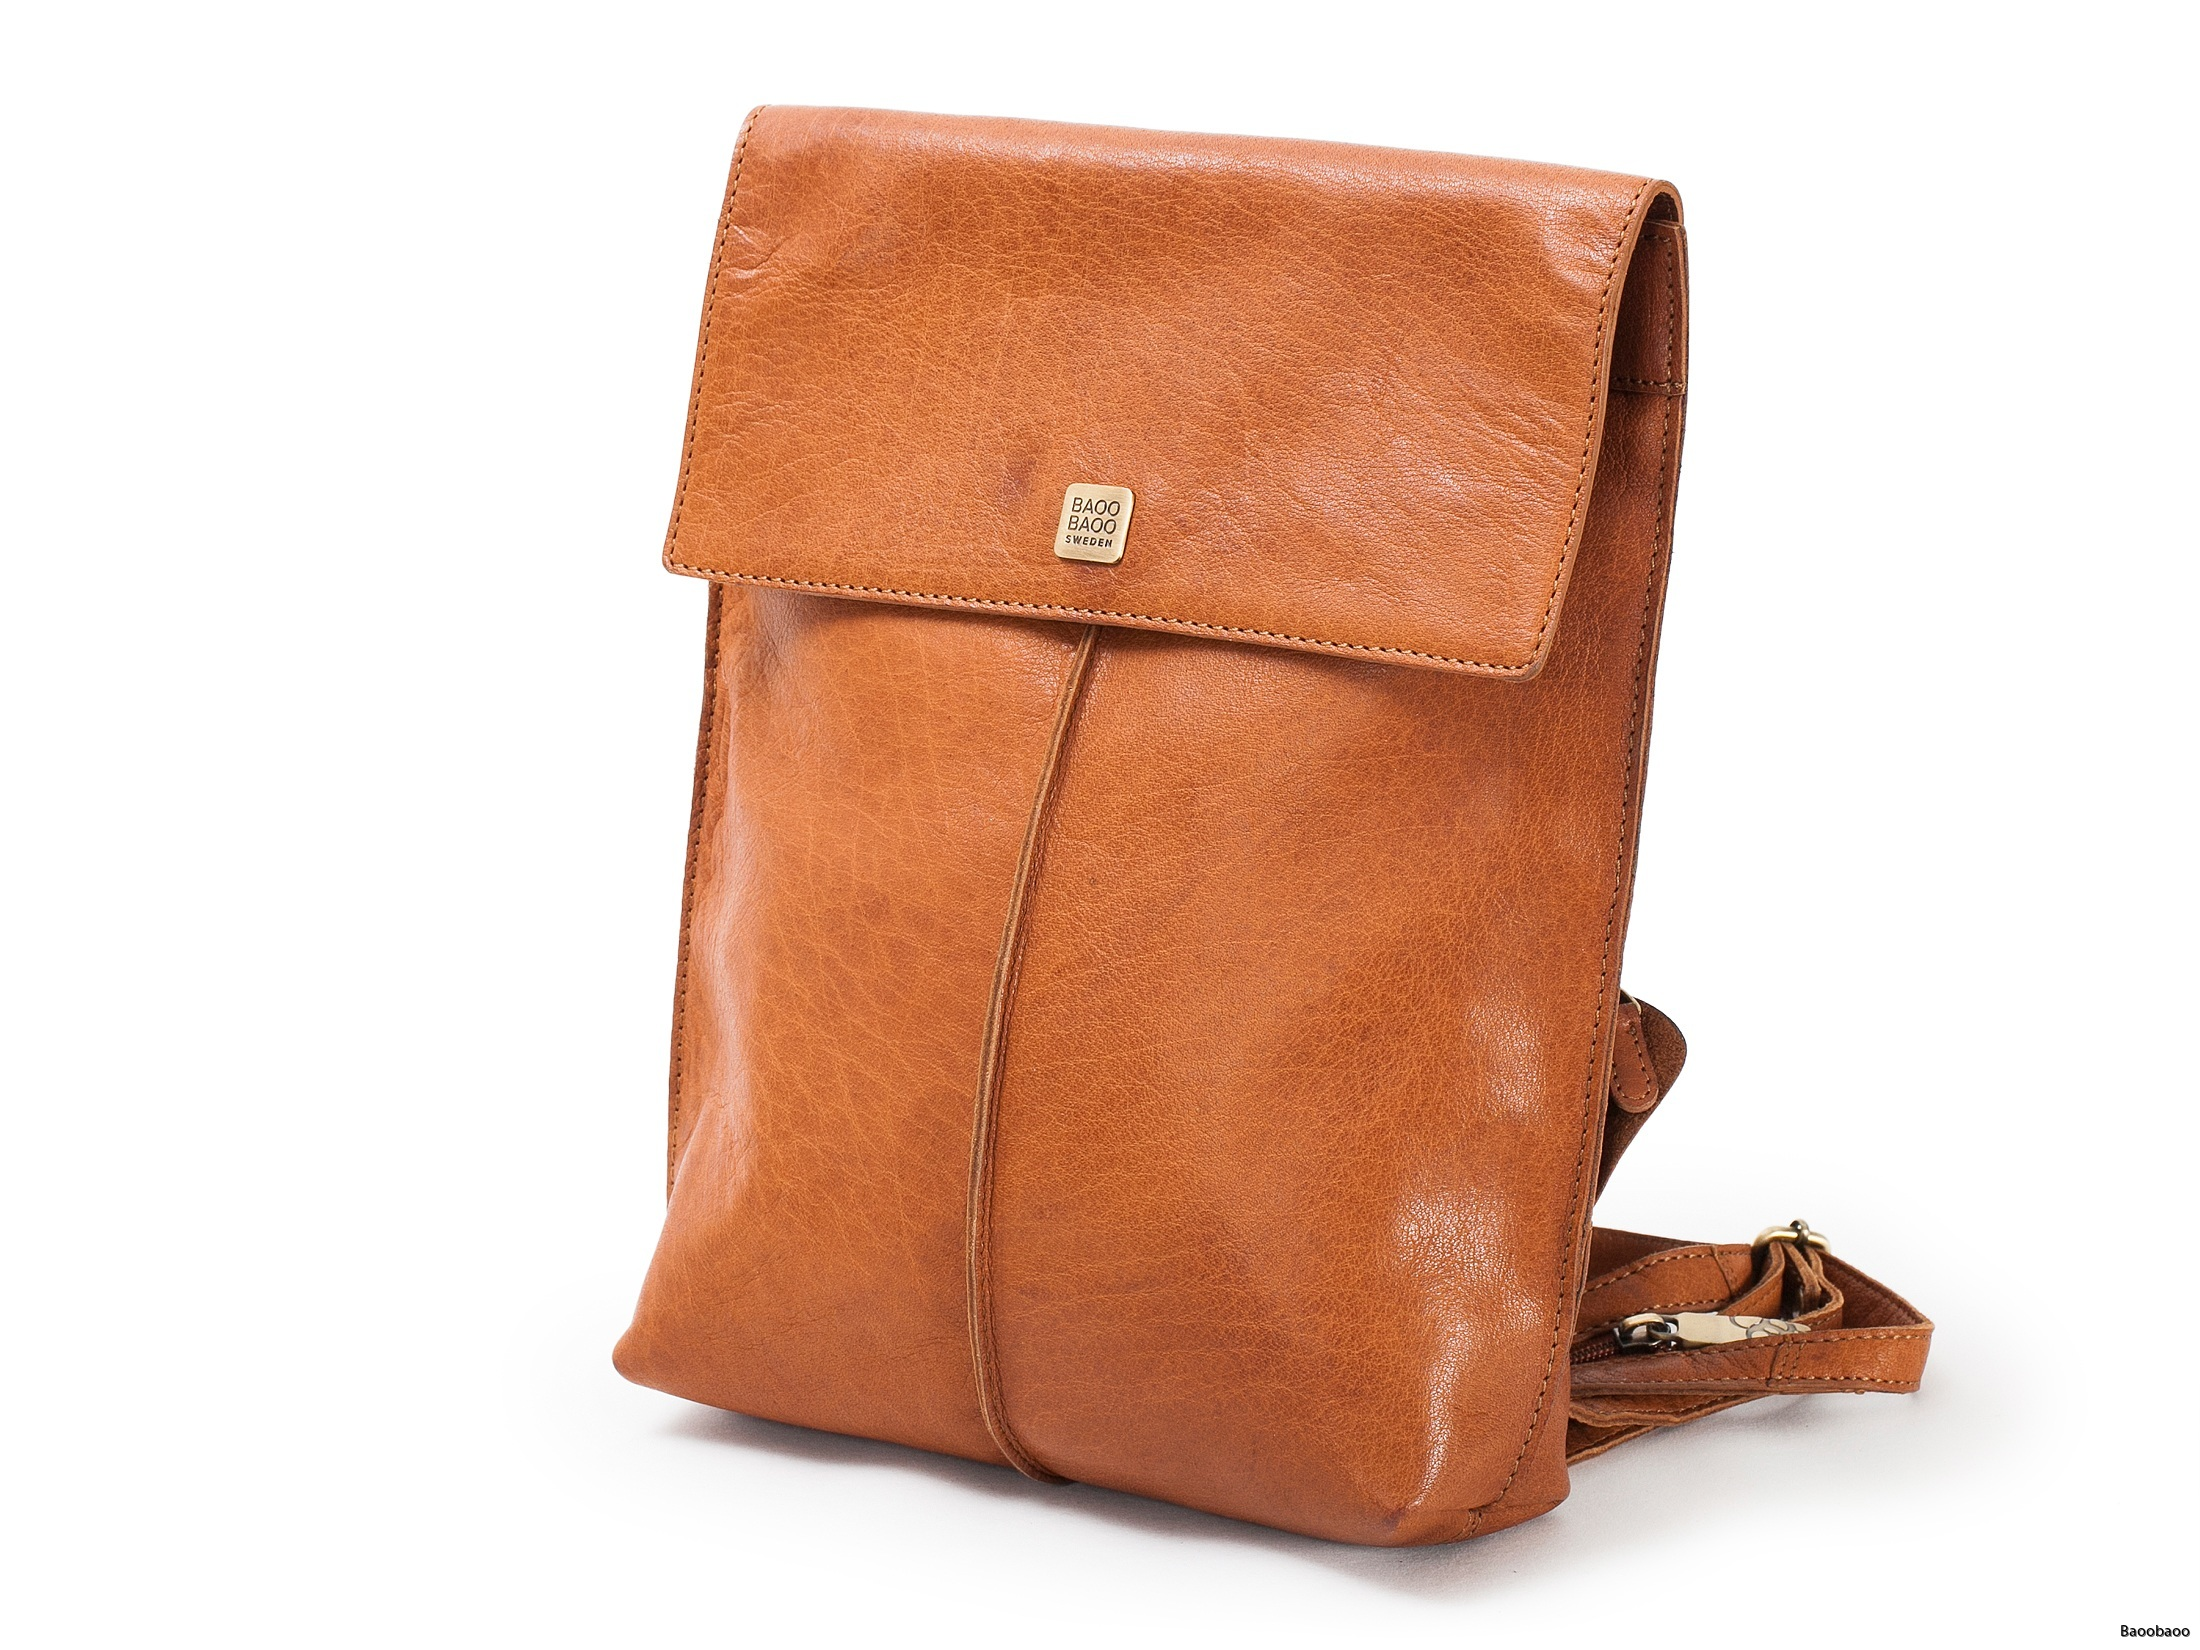 Safetybackpack Tan Front